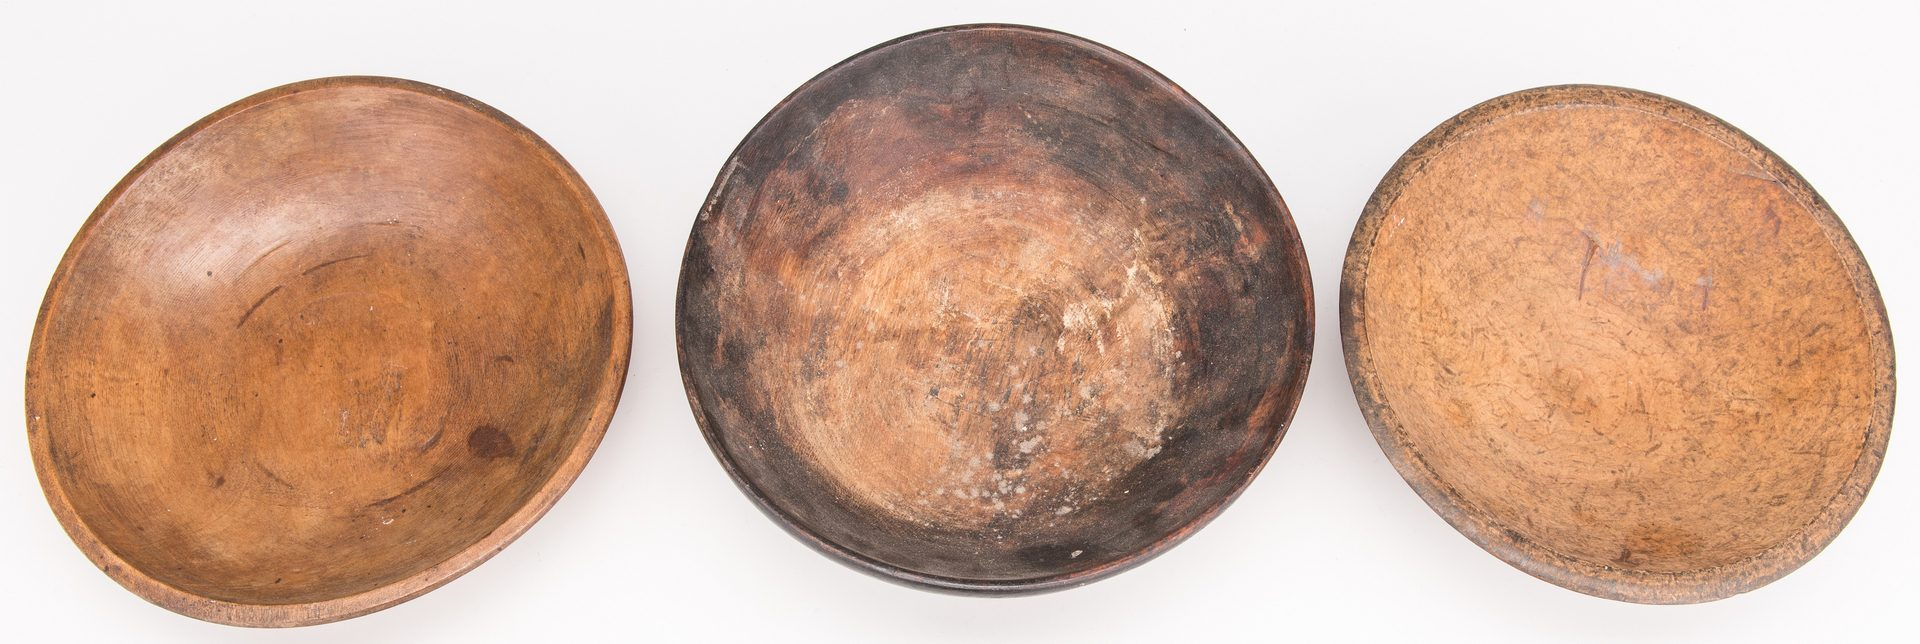 Lot 129: 6 Folk Art Carved Wood Items inc. Burl Bowl, Stool